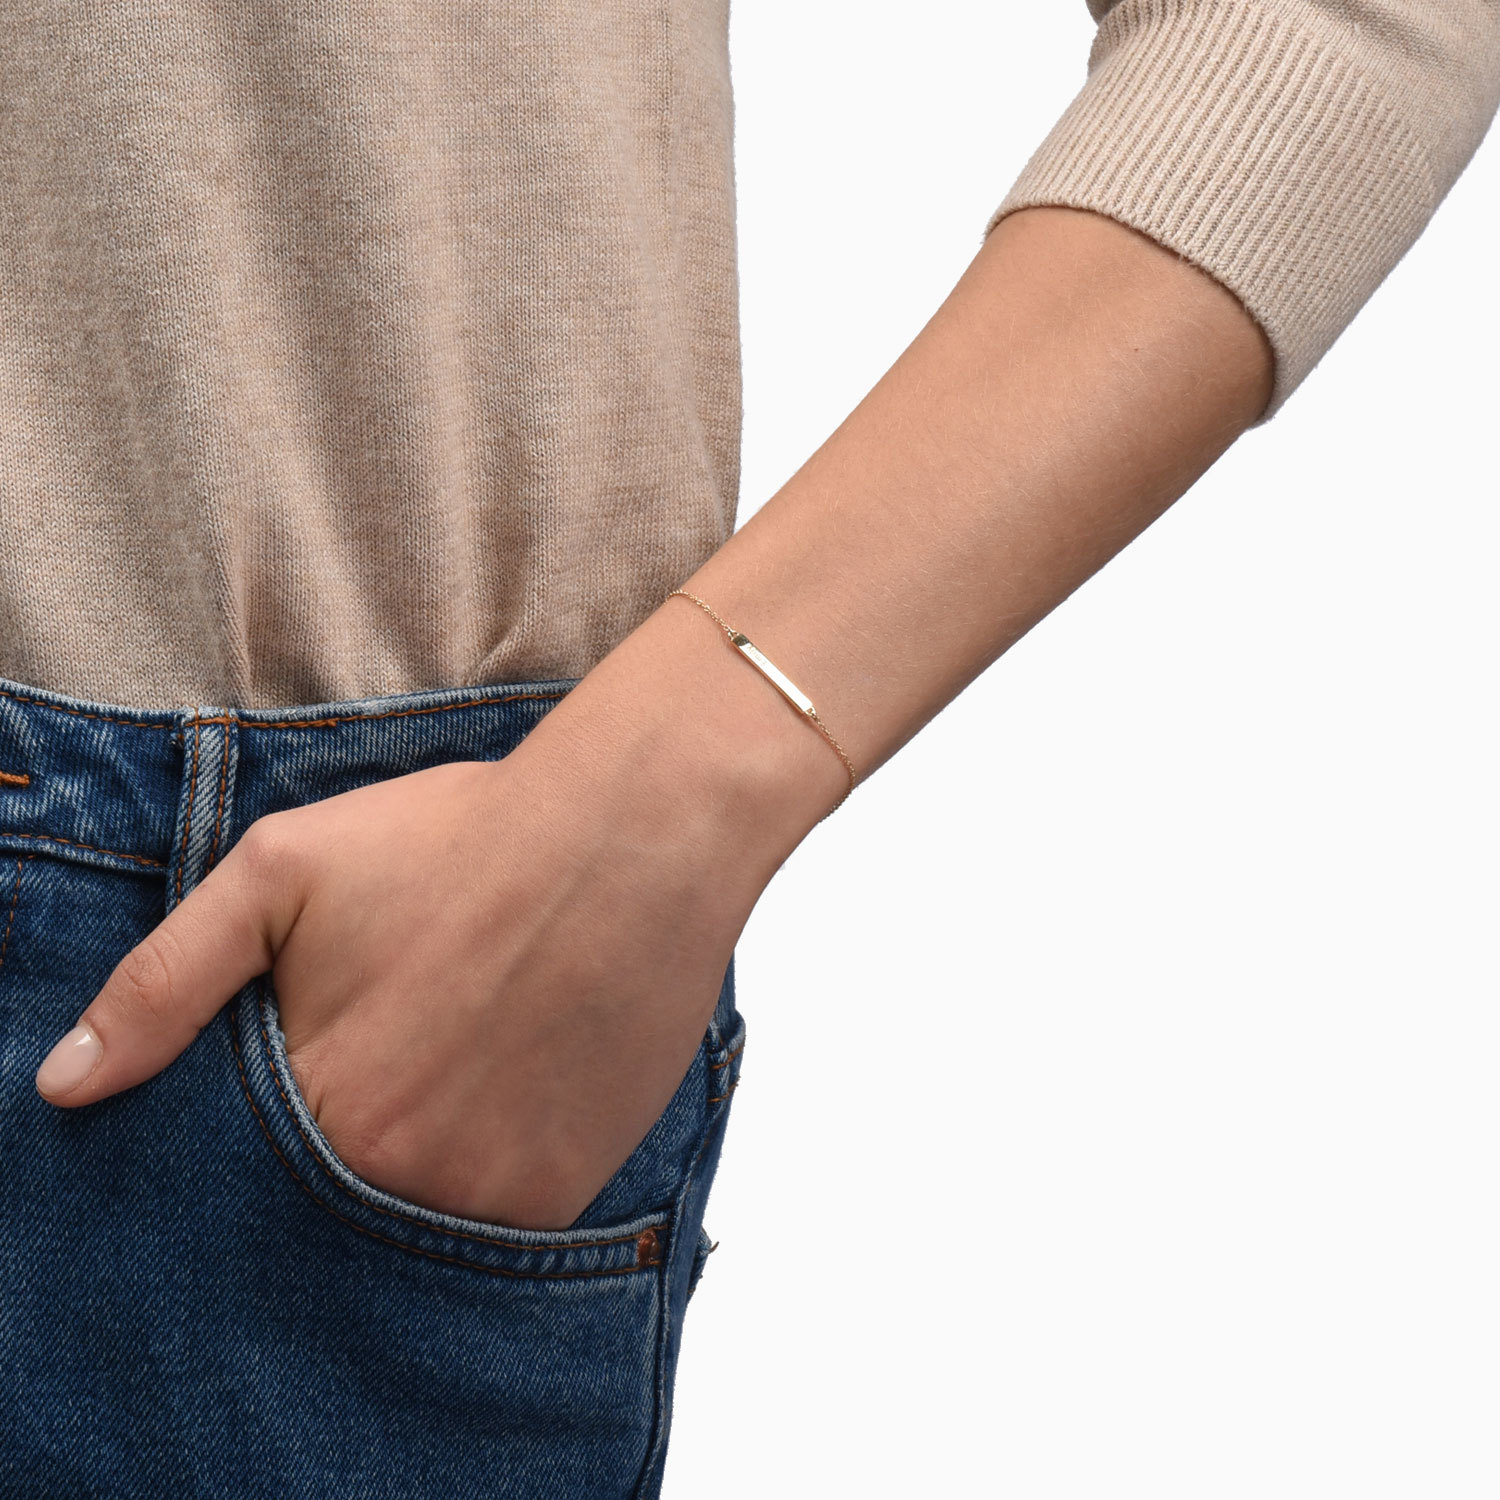 Nice + affordable jewelry - $49+ - MejuriMejuri is known for simple, elegant jewelry without the traditional markup. Engravable bracelets and dainty necklaces are sure to wow your new boo this Valentine's. Just stay away from rings ;)